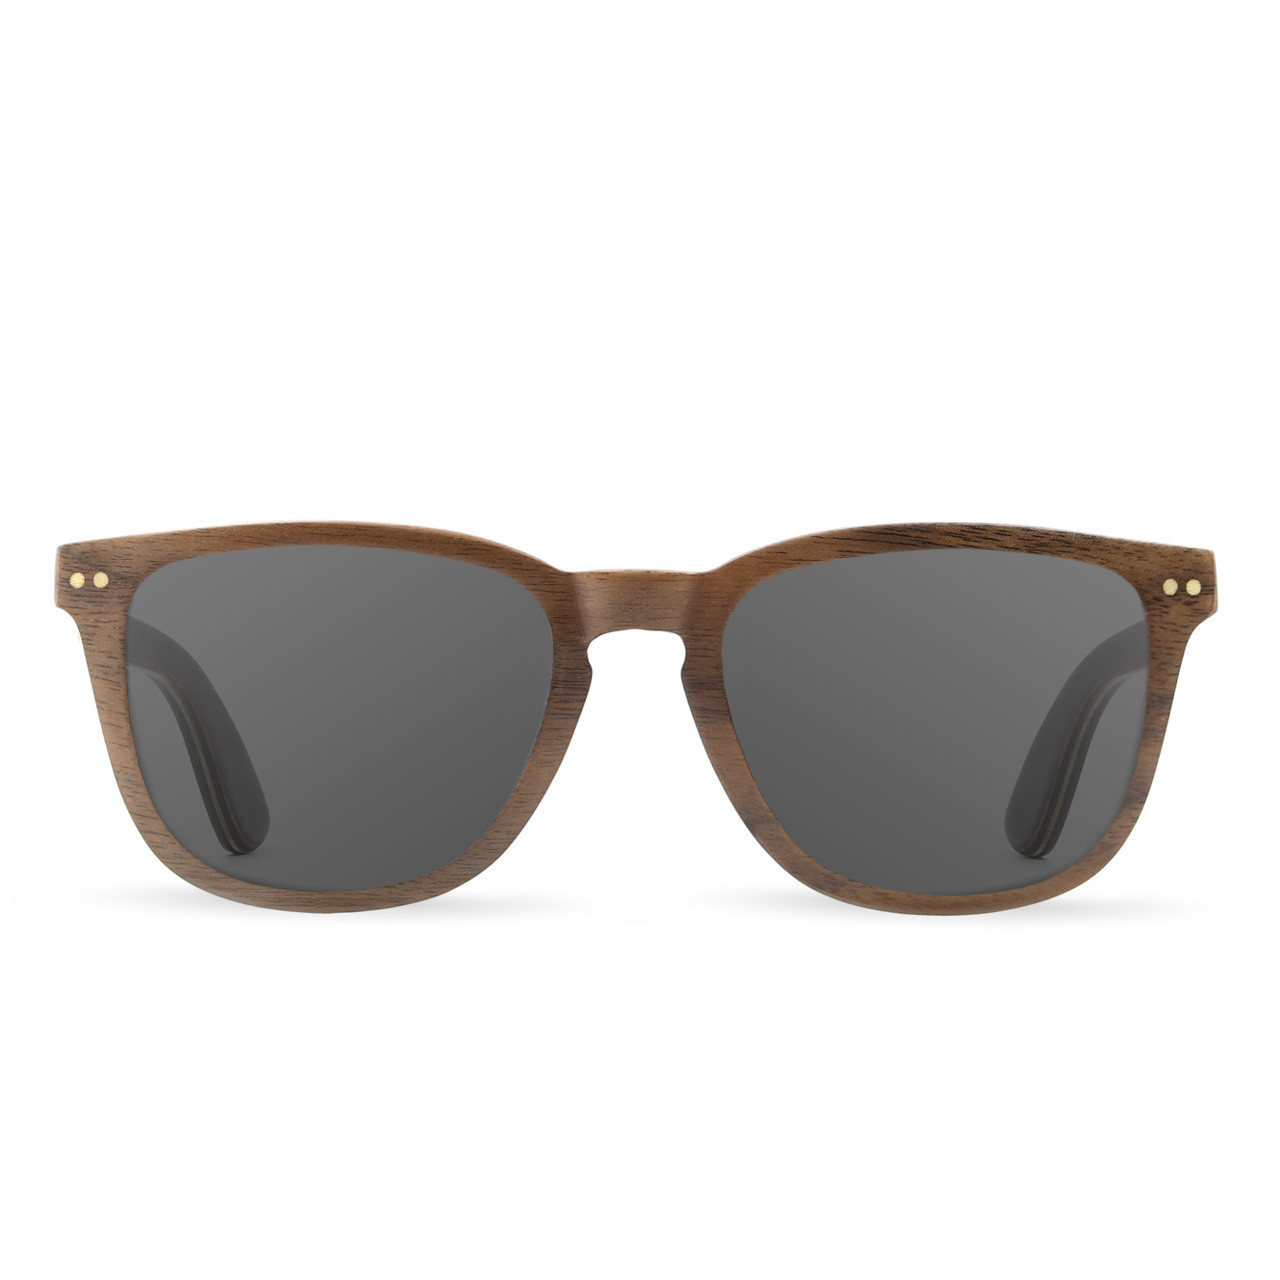 Wooden Sunglasses by Tmbr | Polarized Wood Frame Sunglasses